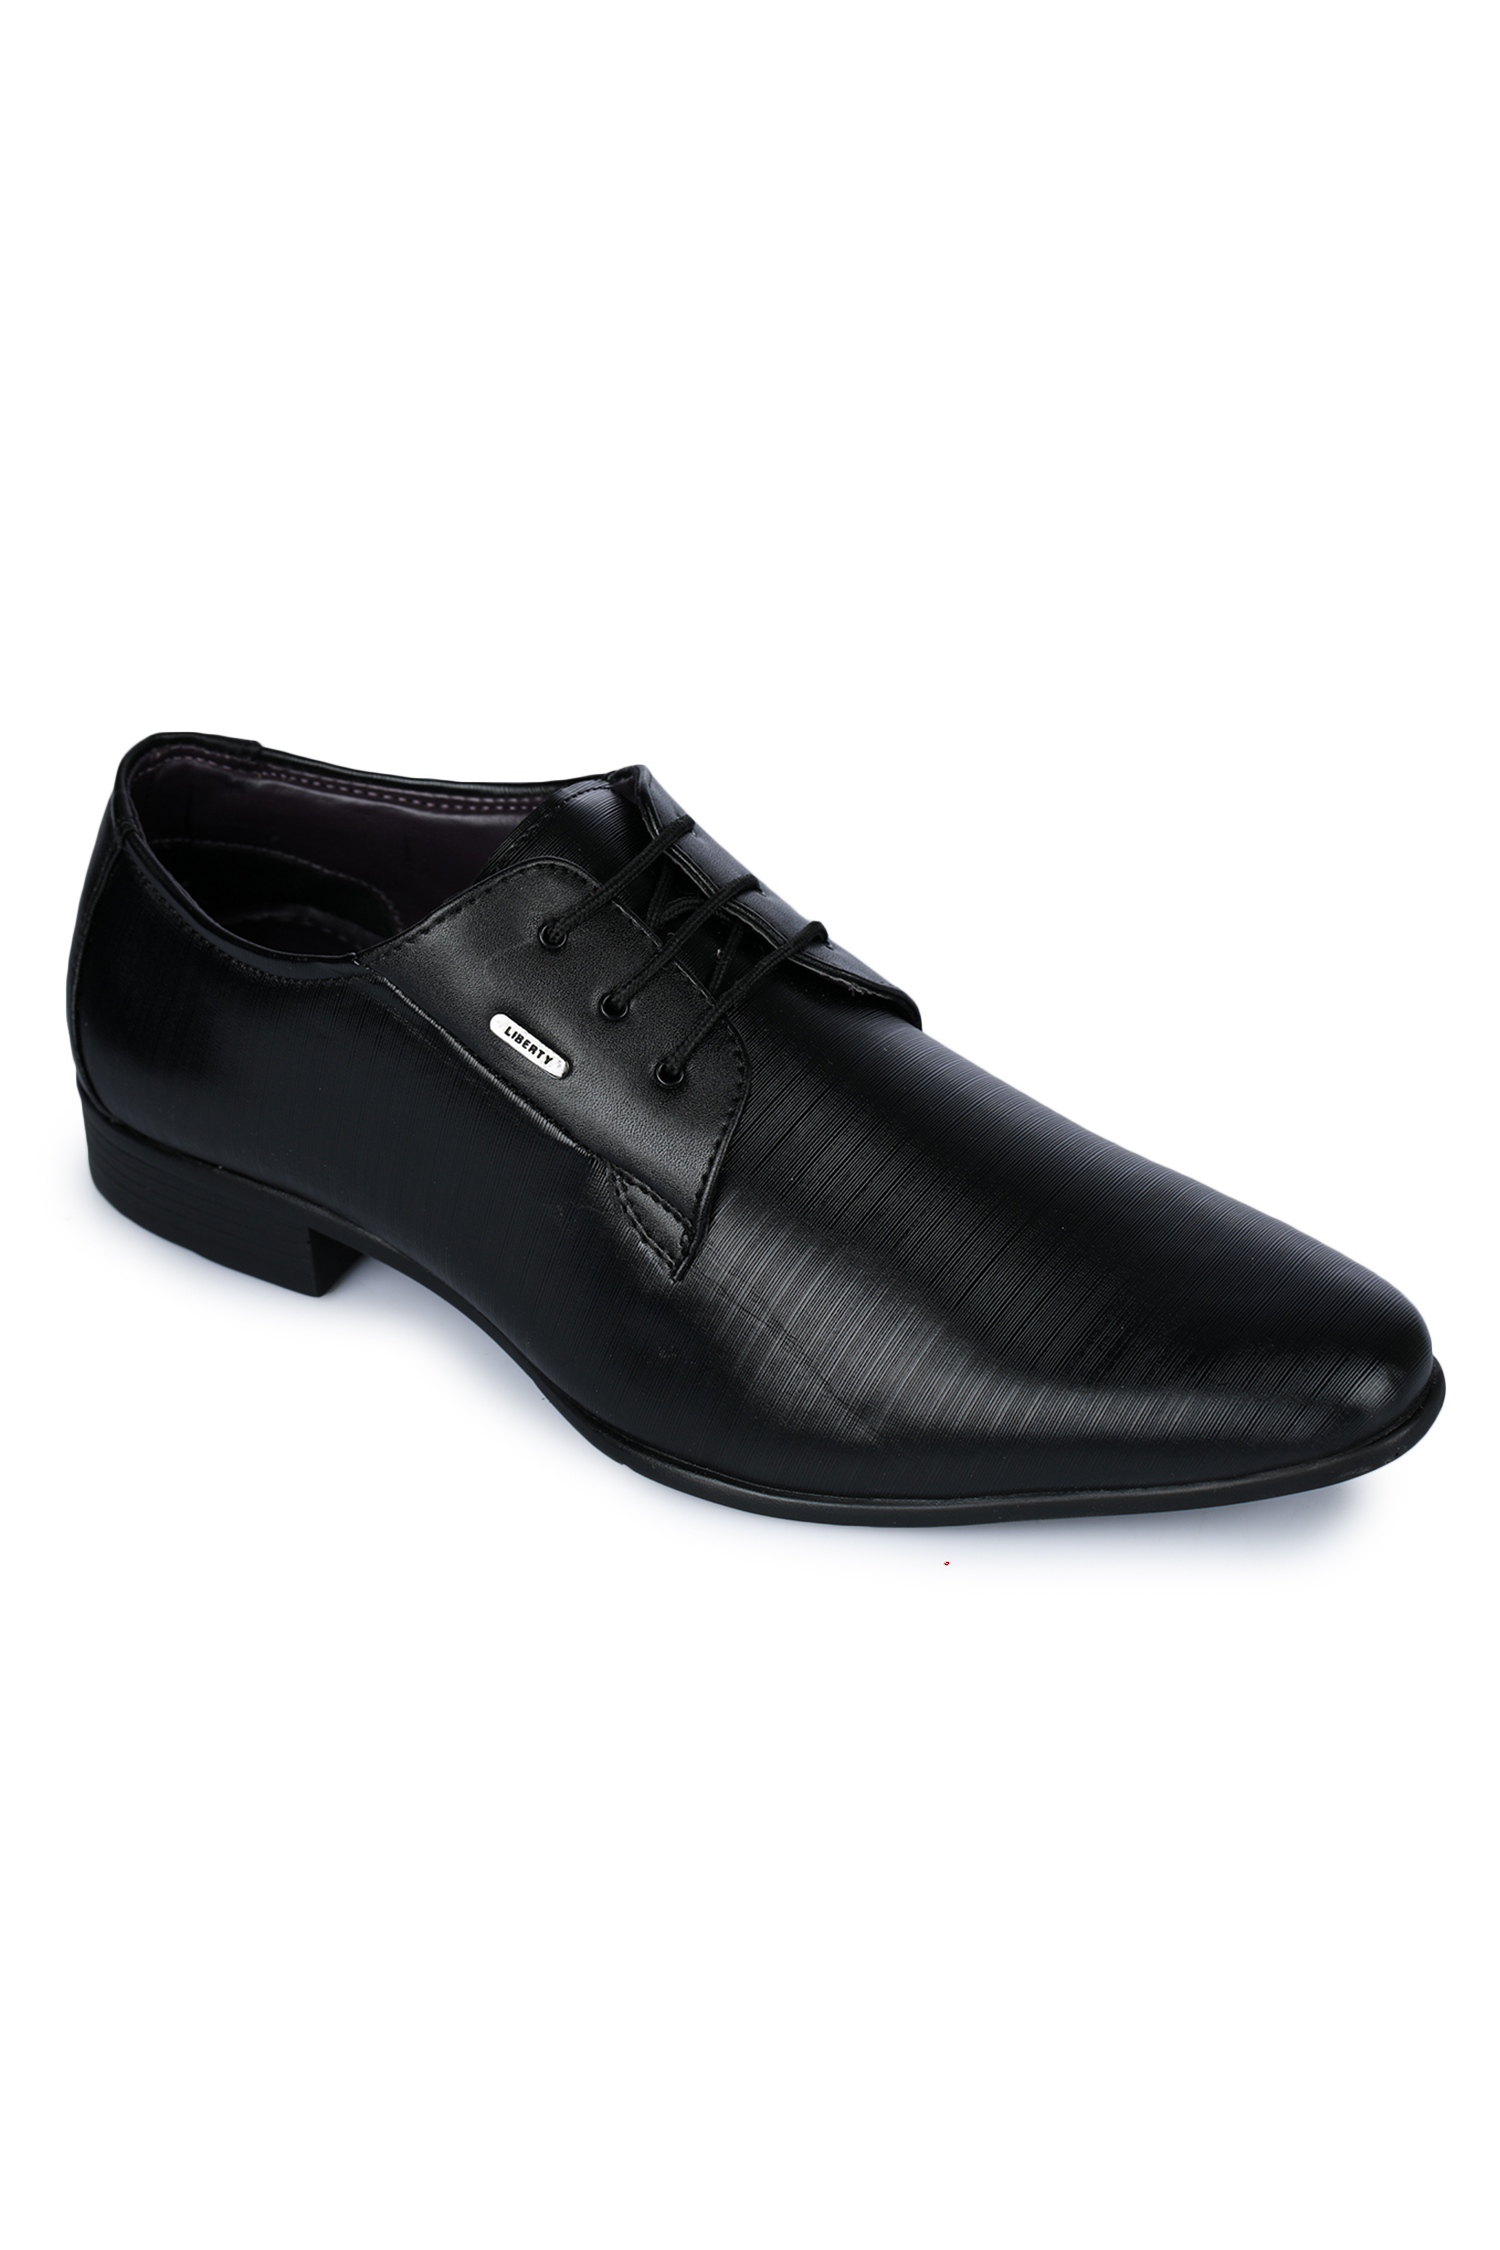 Liberty | Liberty Fortune Black Formal Derby Shoes LL-2003_Black For - Men